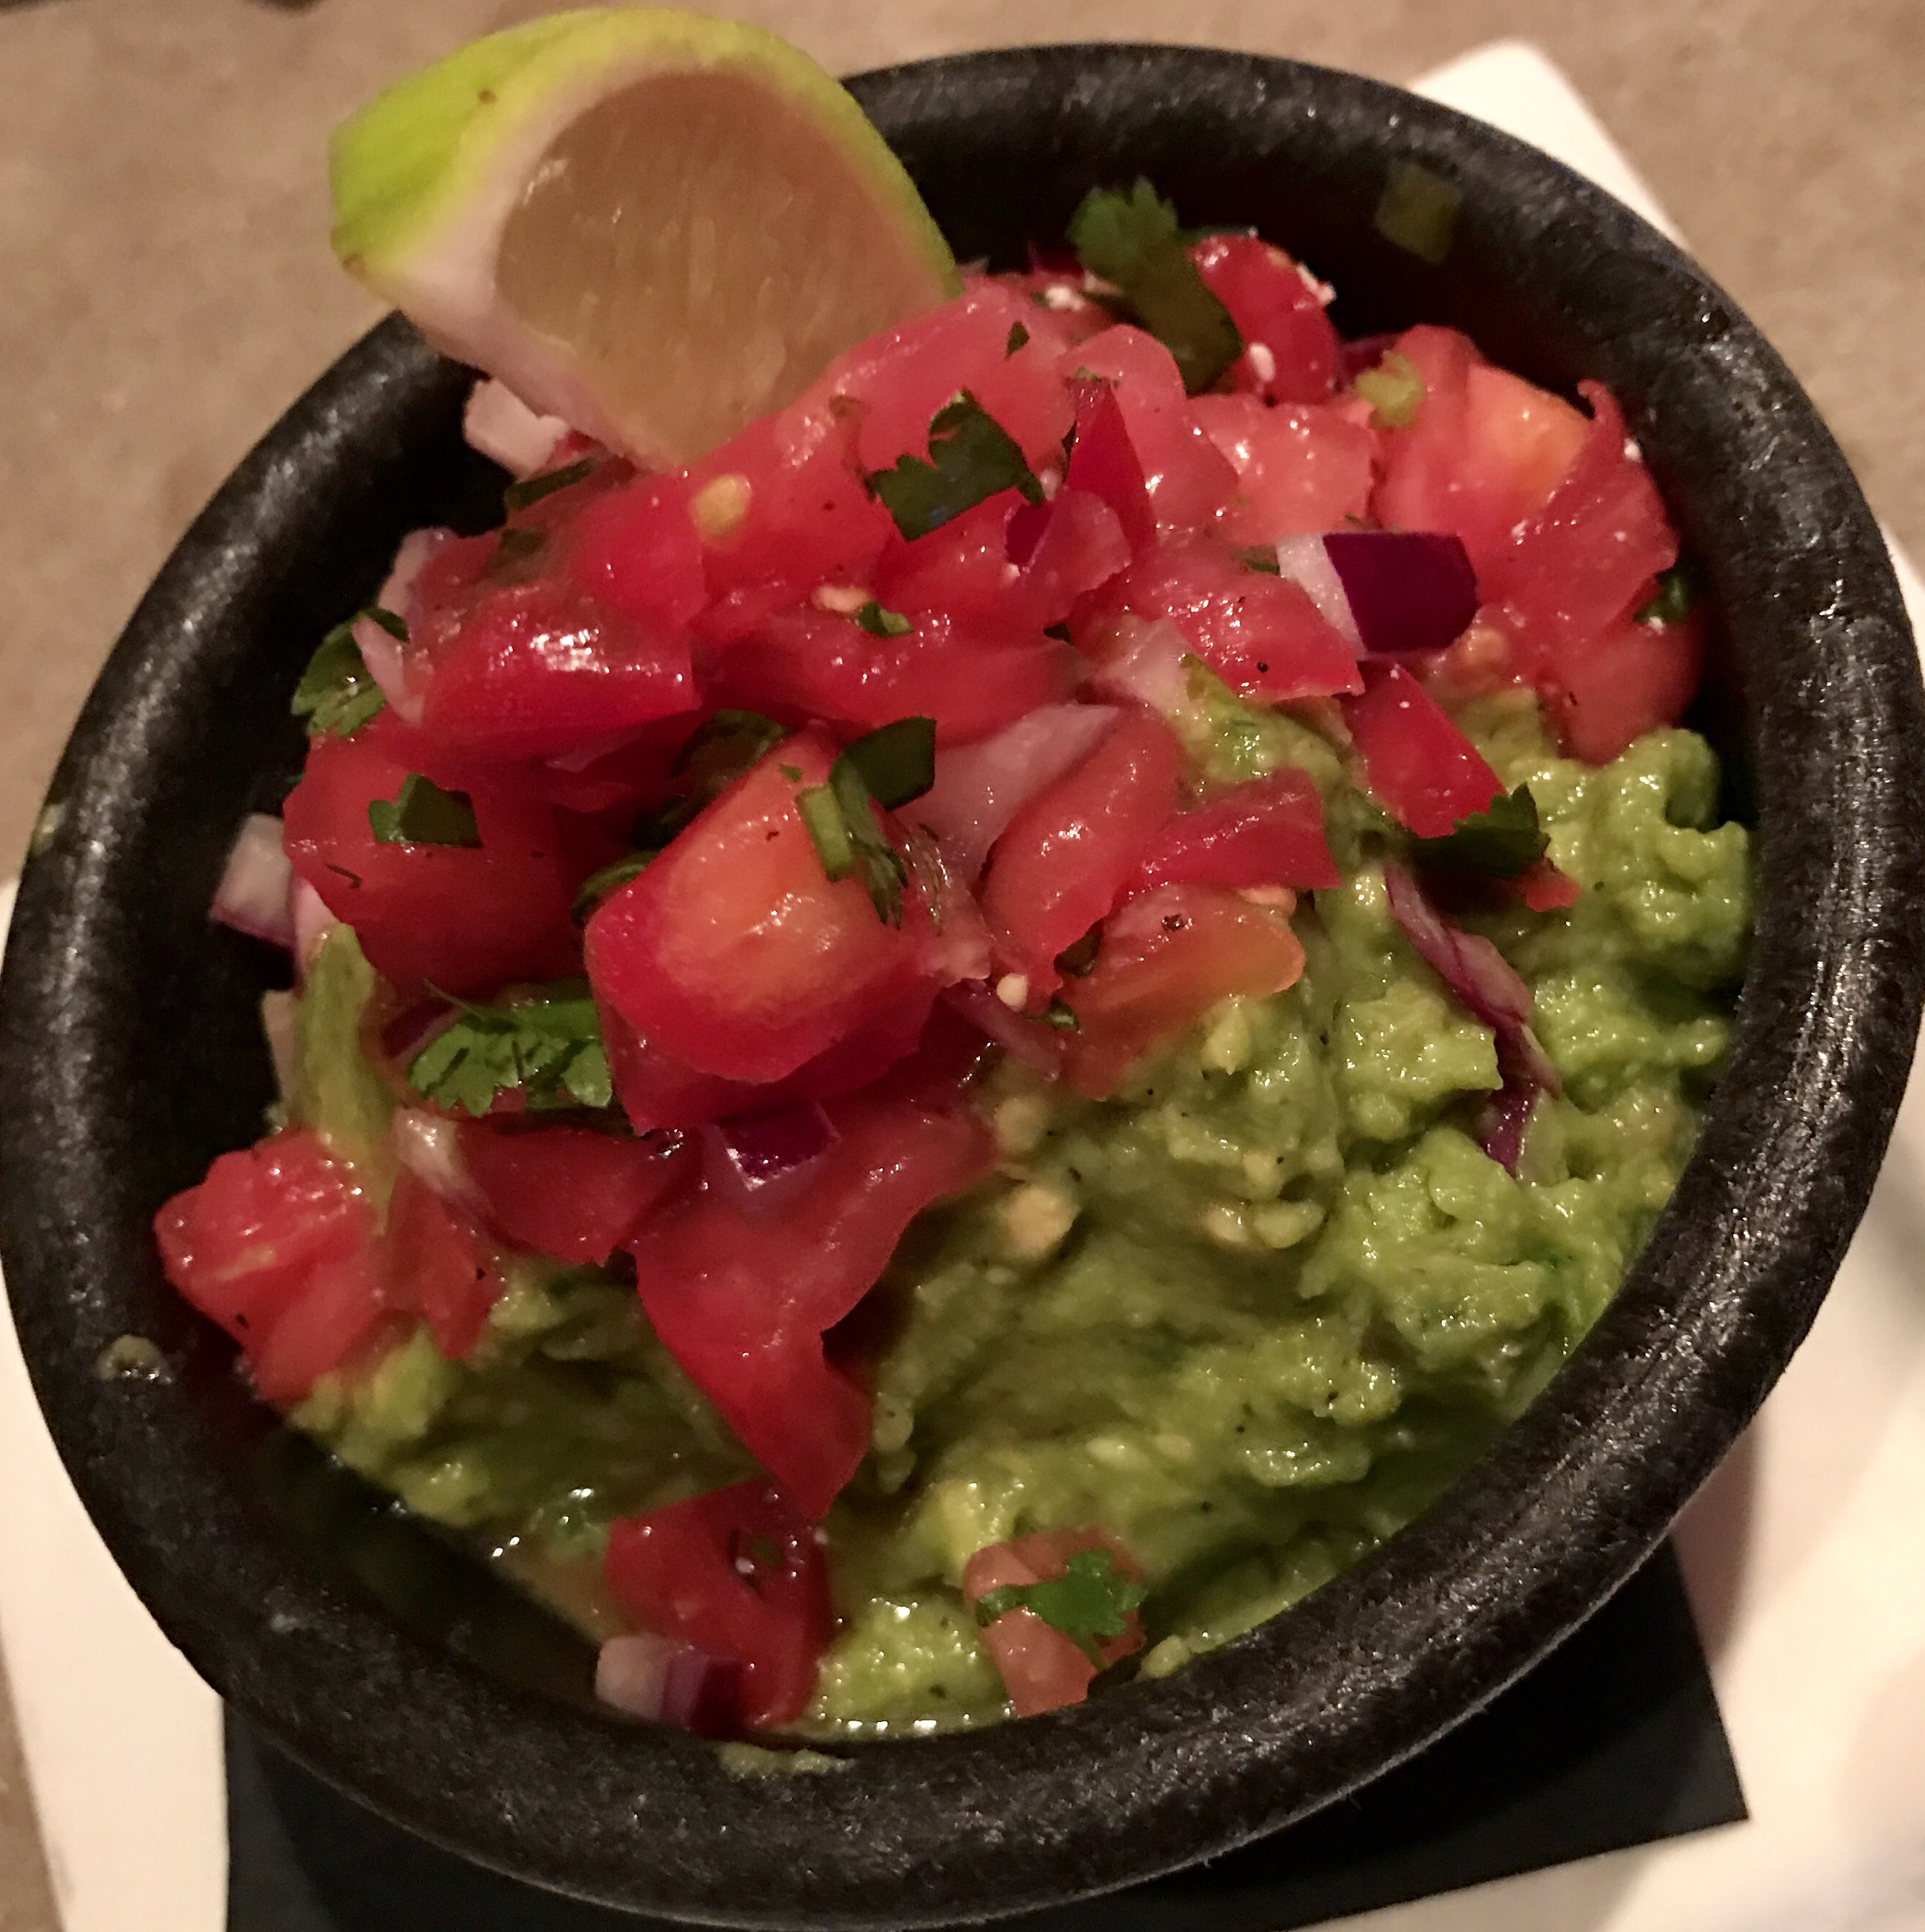 Tableside Guacamole at Nueva Cantina